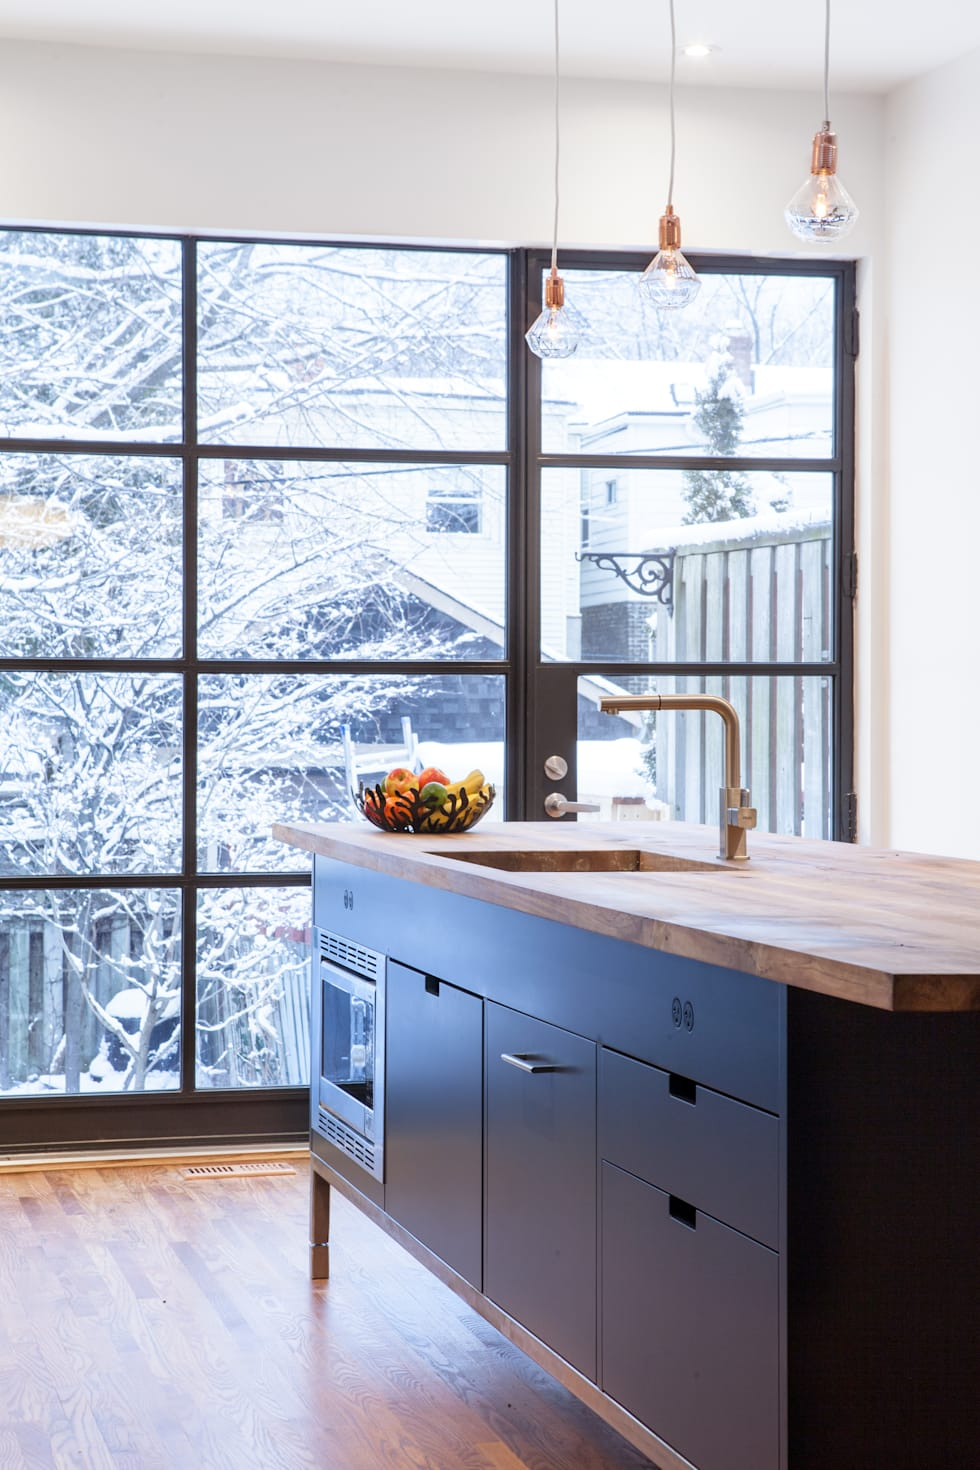 25 ways to use reclaimed wood in your home